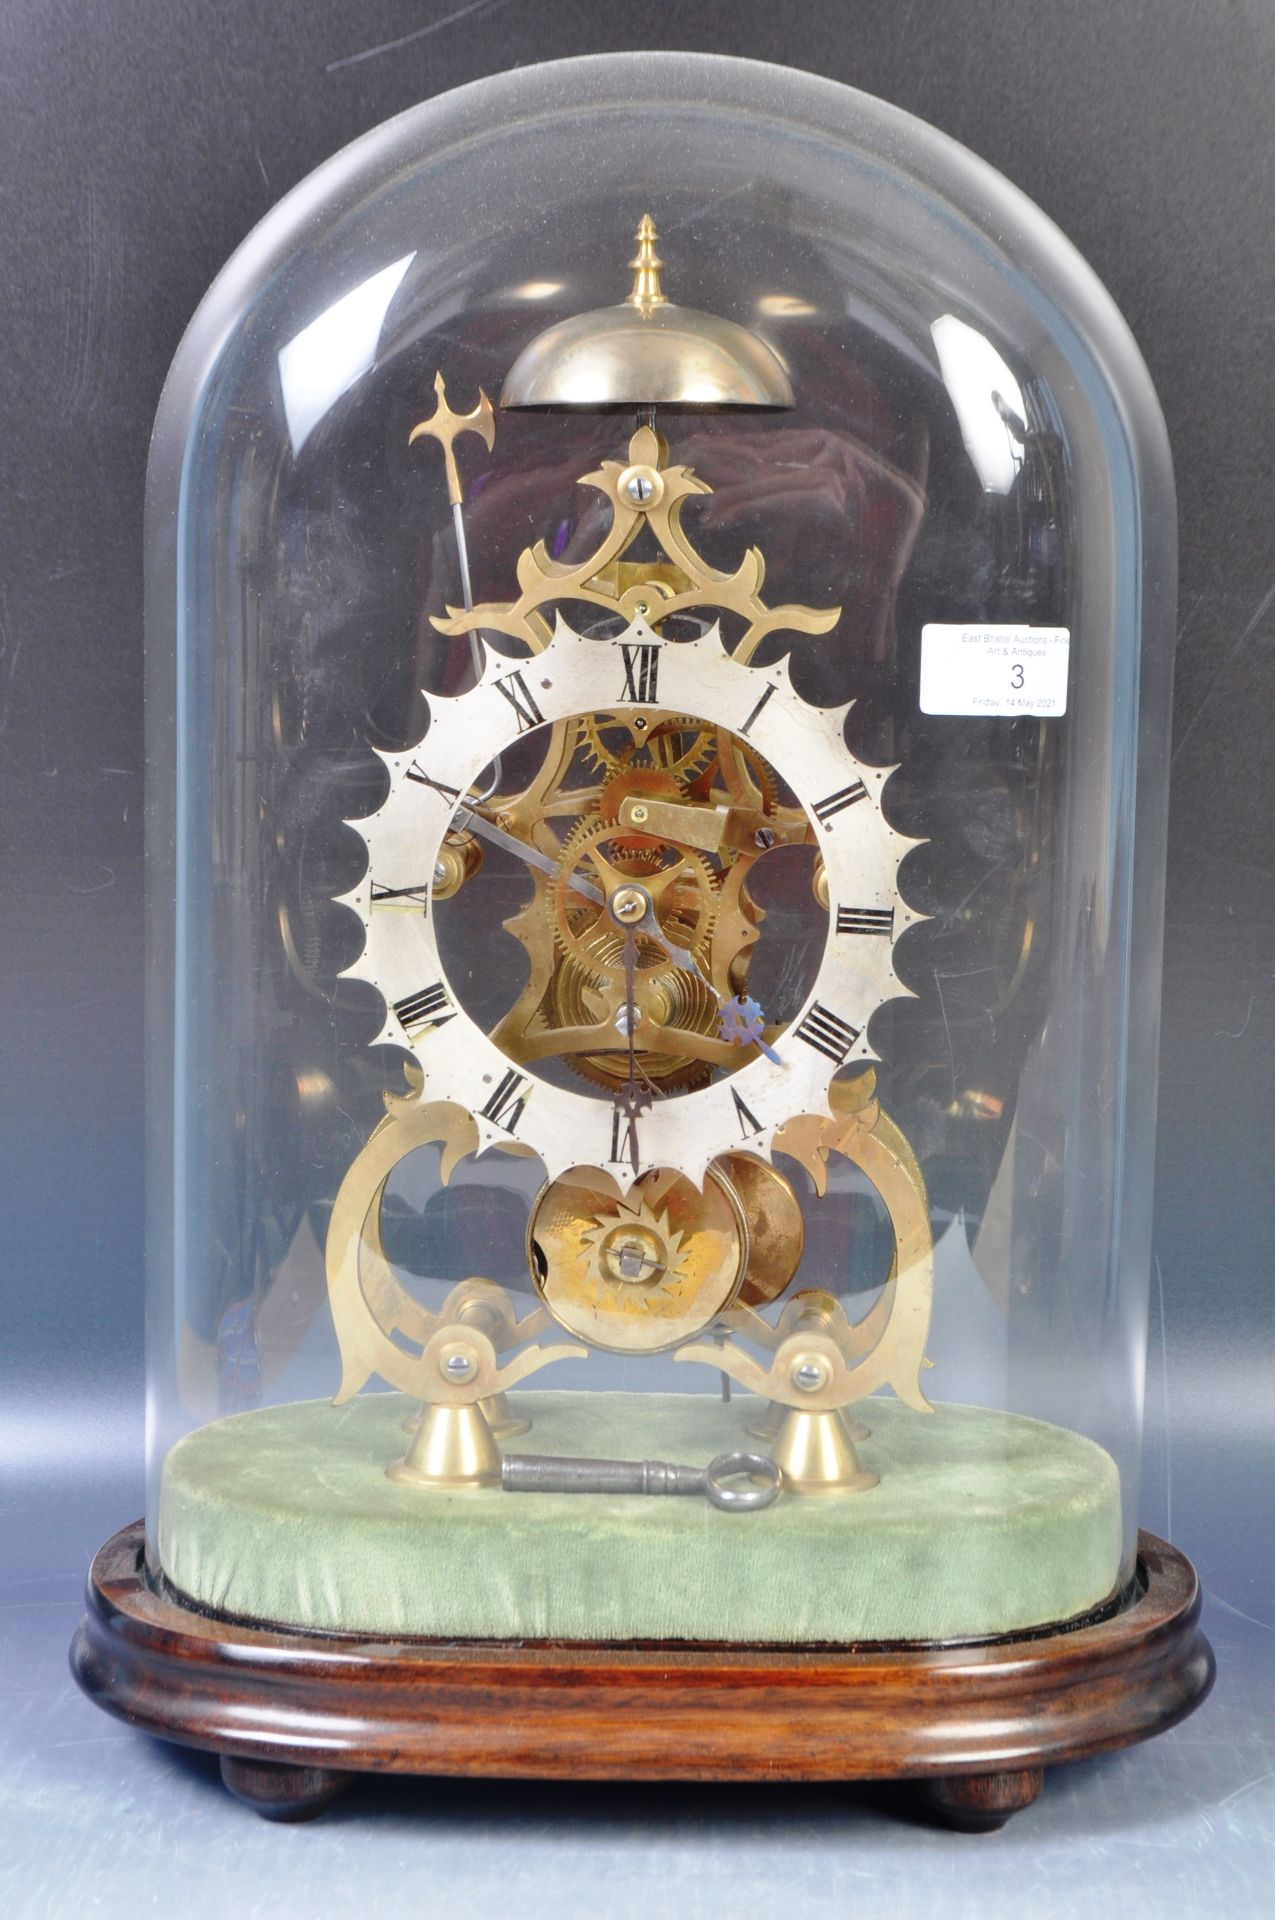 ANTIQUE MID 19TH CENTURY GOTHIC BRASS SKELETON CLOCK IN GLASS DOME